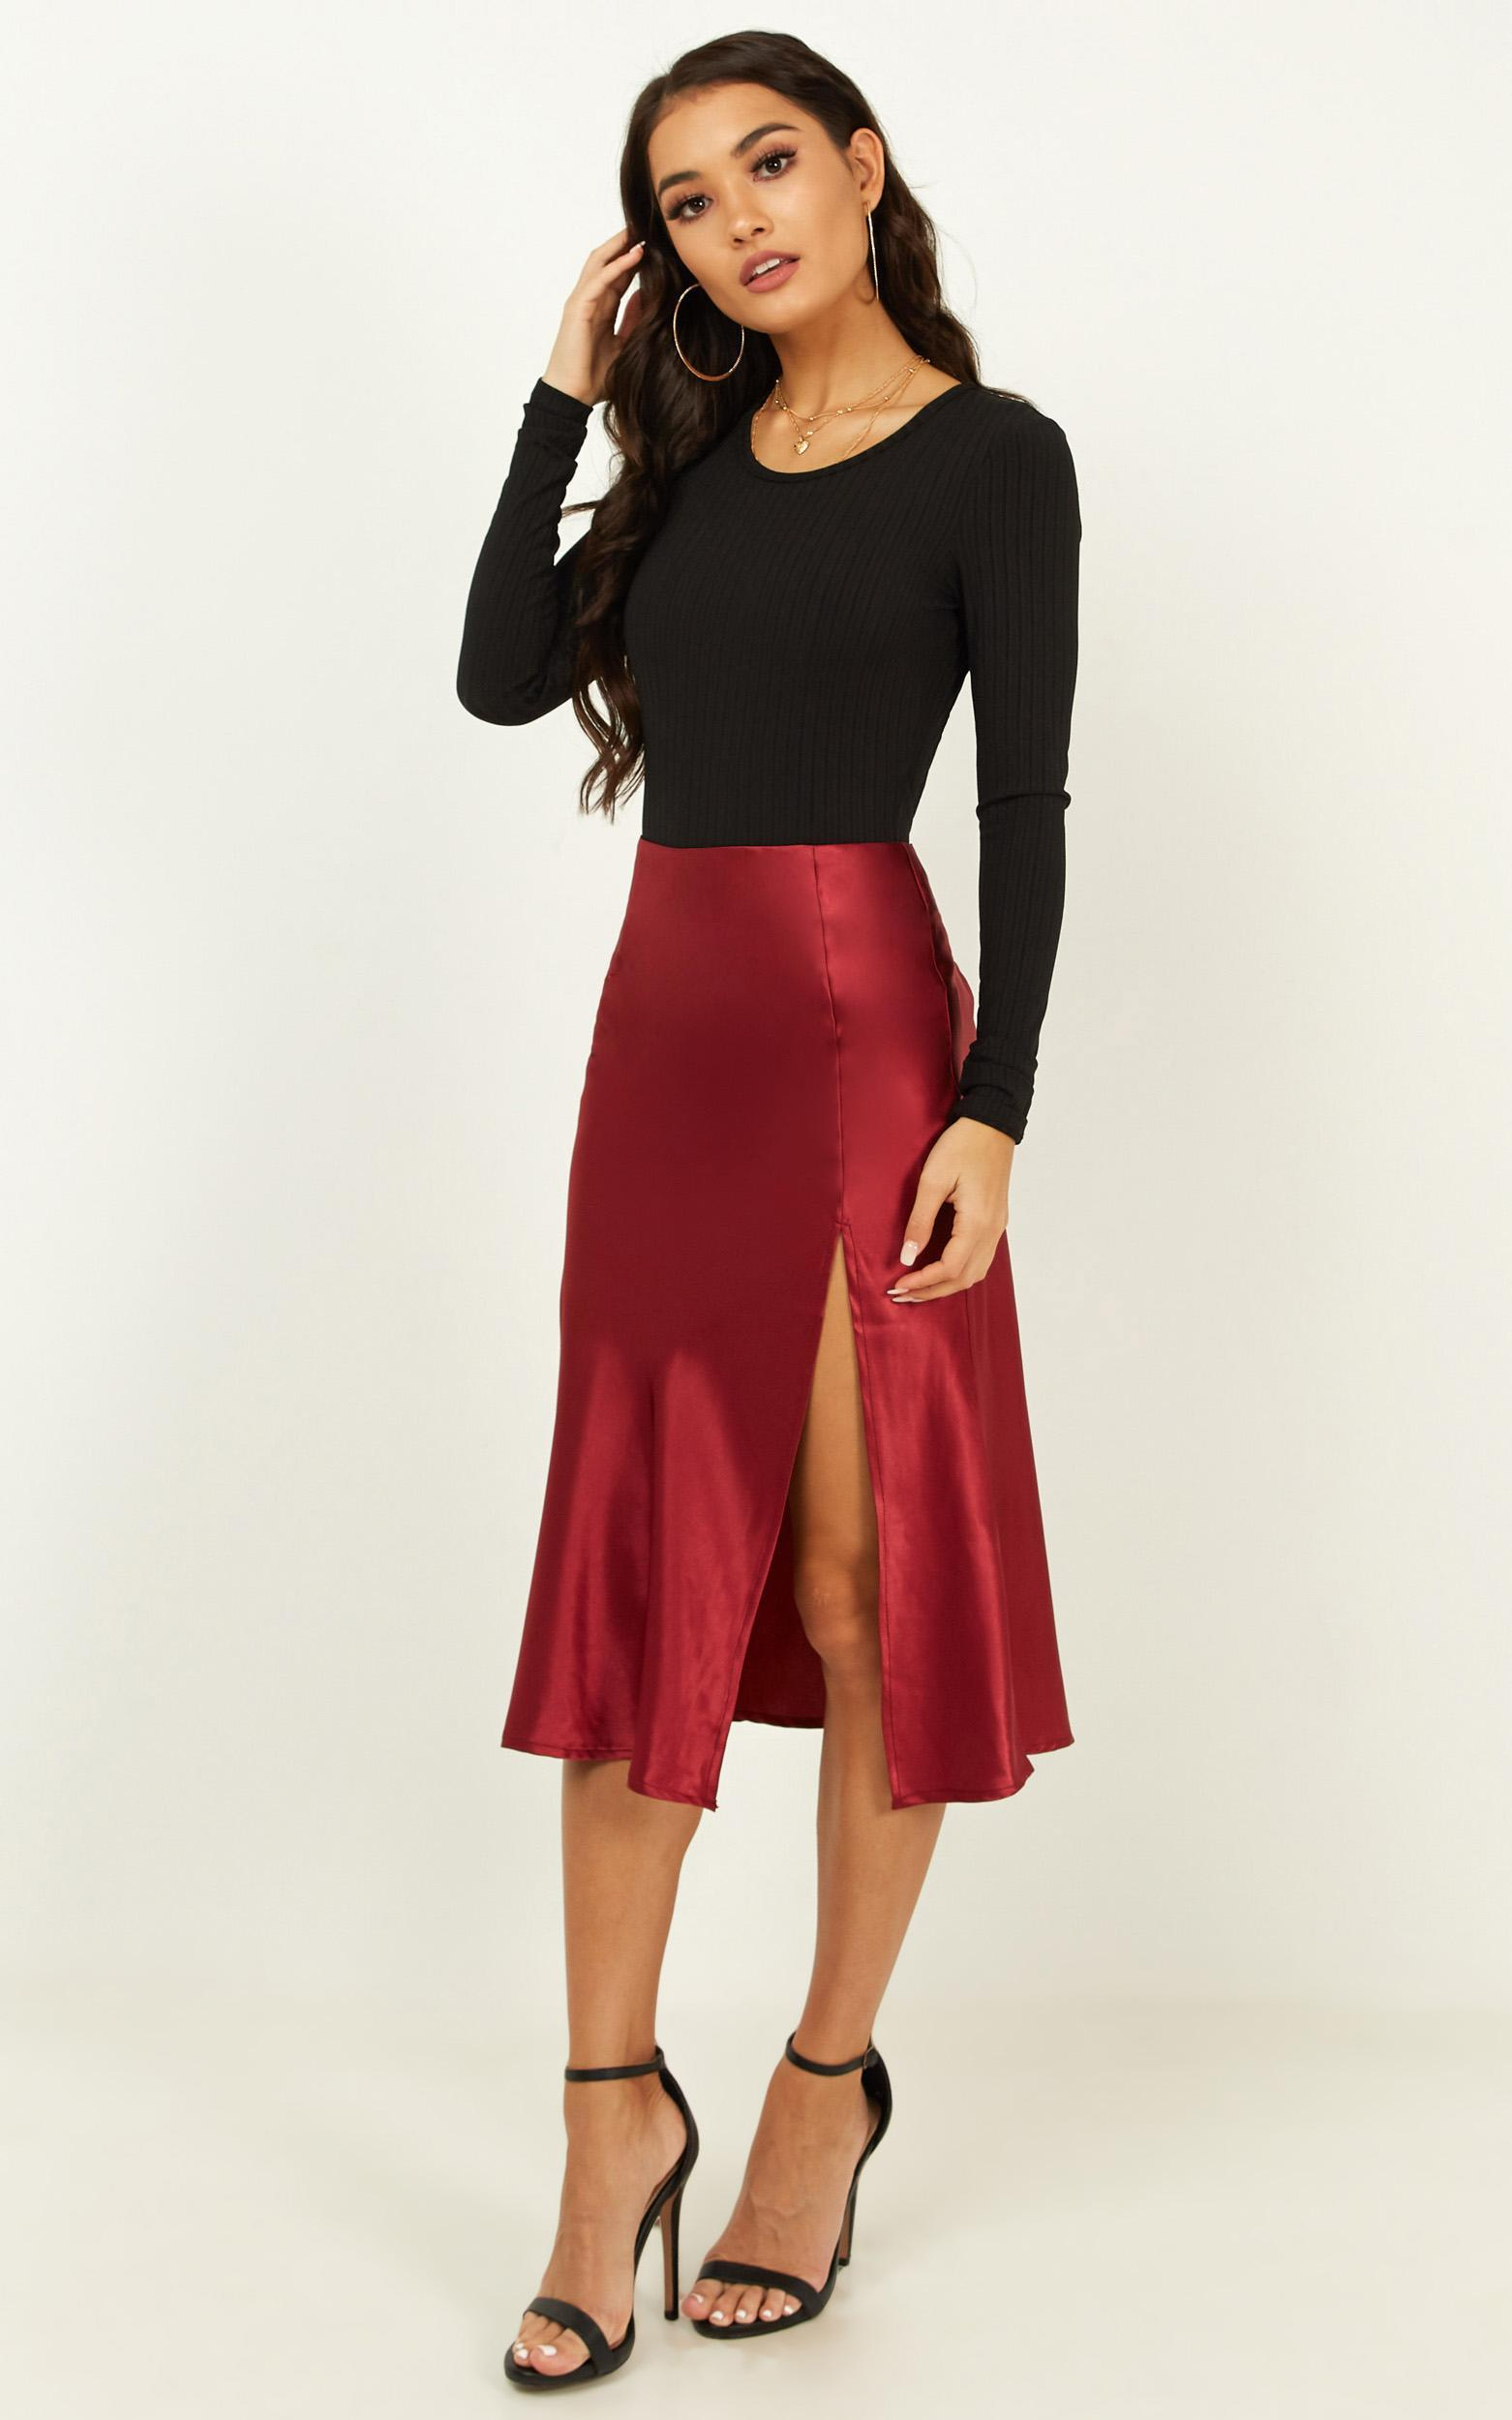 No More Fears Skirt in wine satin - 20 (XXXXL), Wine, hi-res image number null